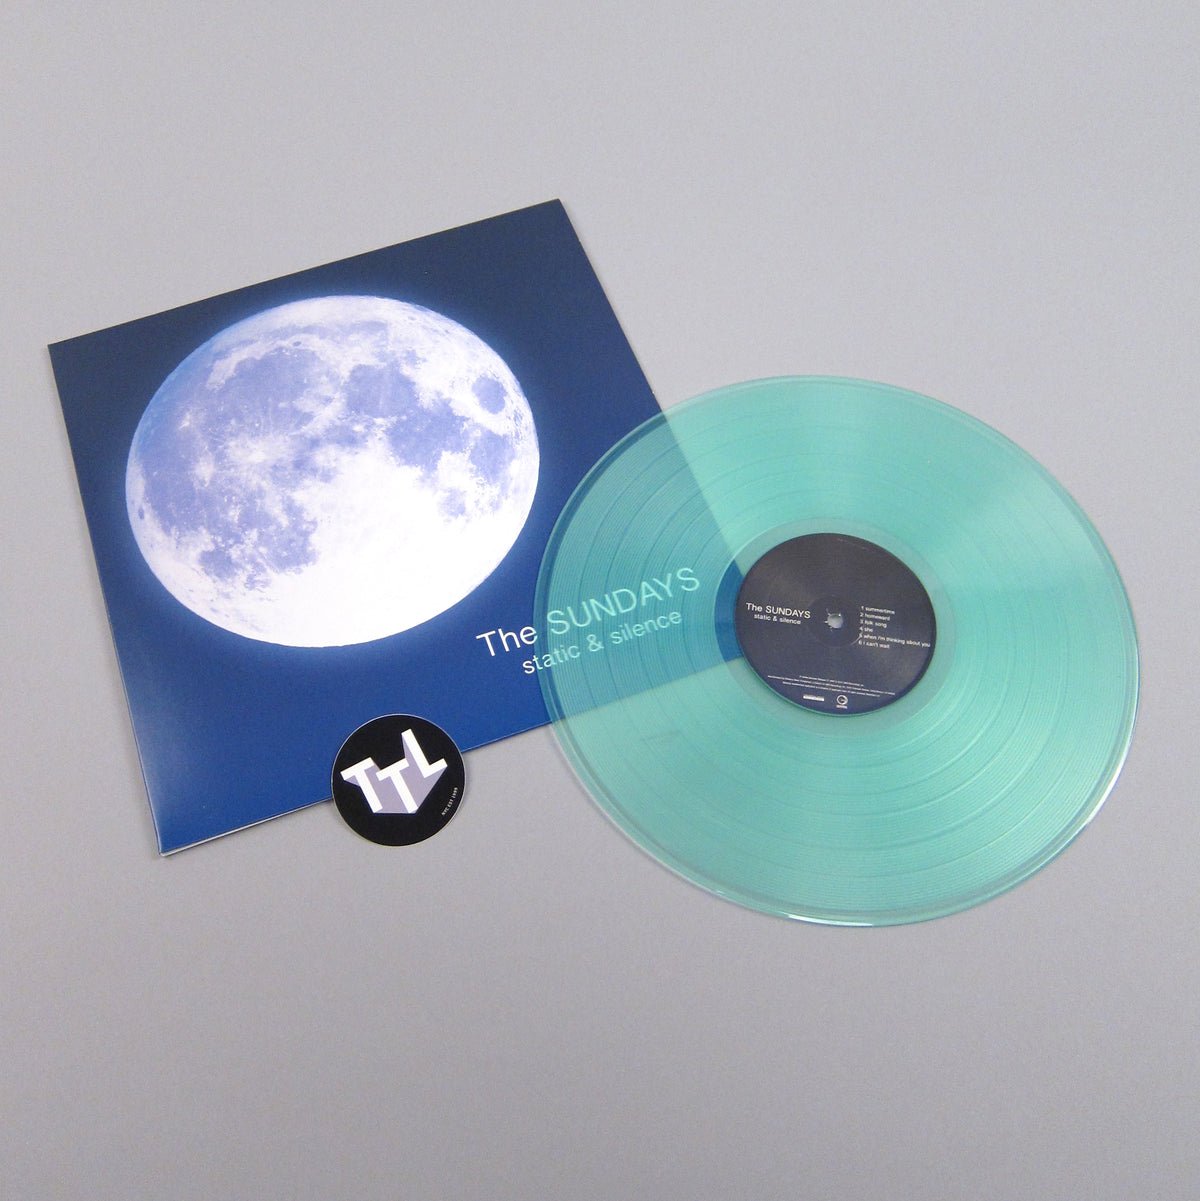 The Sundays: Static & Silence (Sea Glass Colored Vinyl) Vinyl LP - Turntable Lab Exclusive